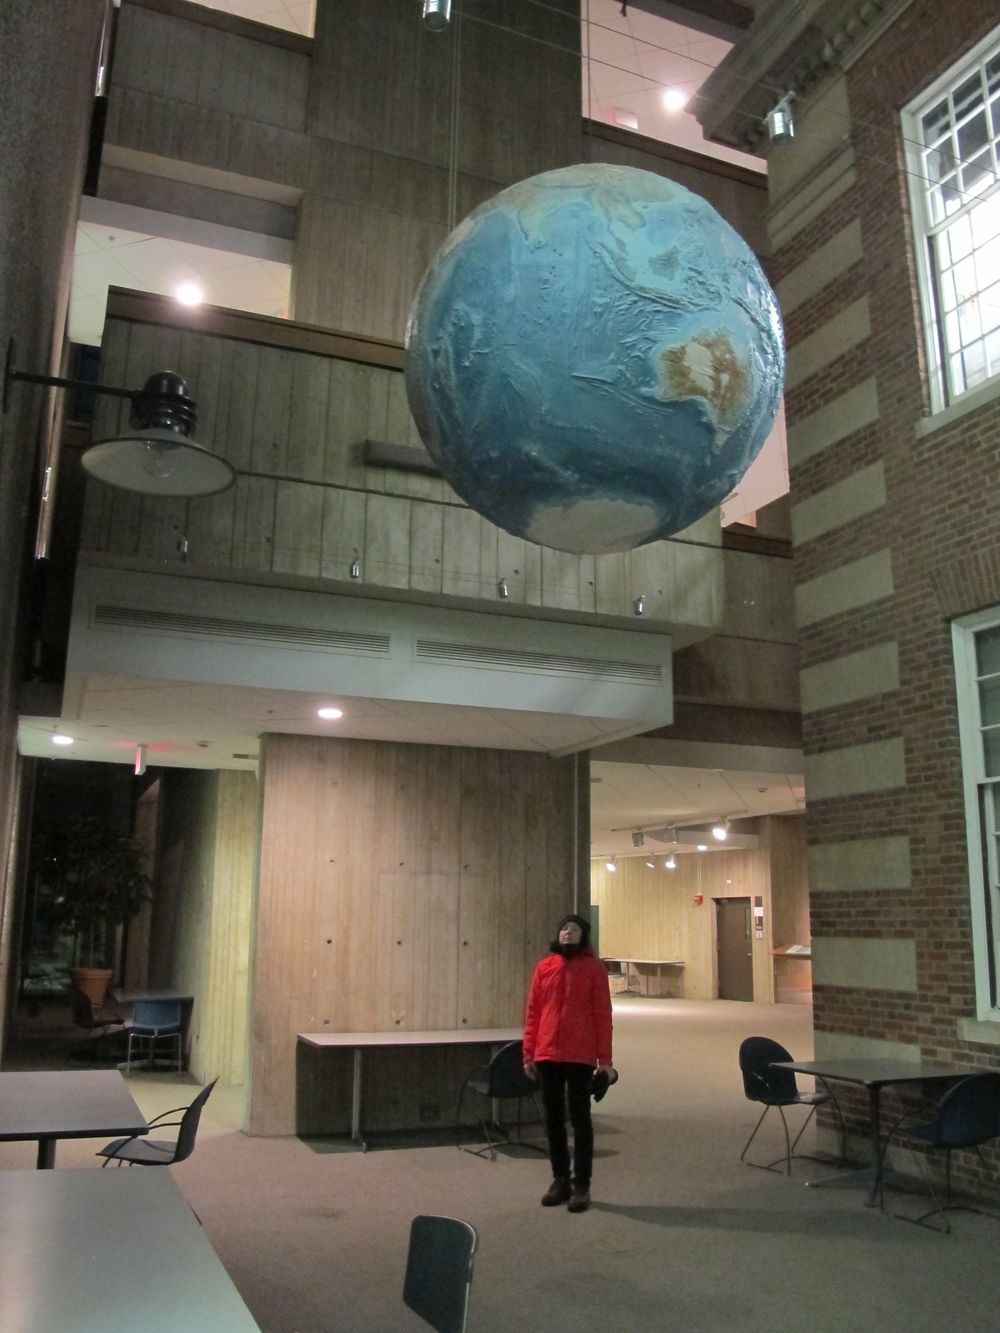 You Facebook followers already saw this shot of Pamelia under the big, revolving Earth in the Dartmouth physics department. We would love to add one of these (a smaller model) to the Notebook.